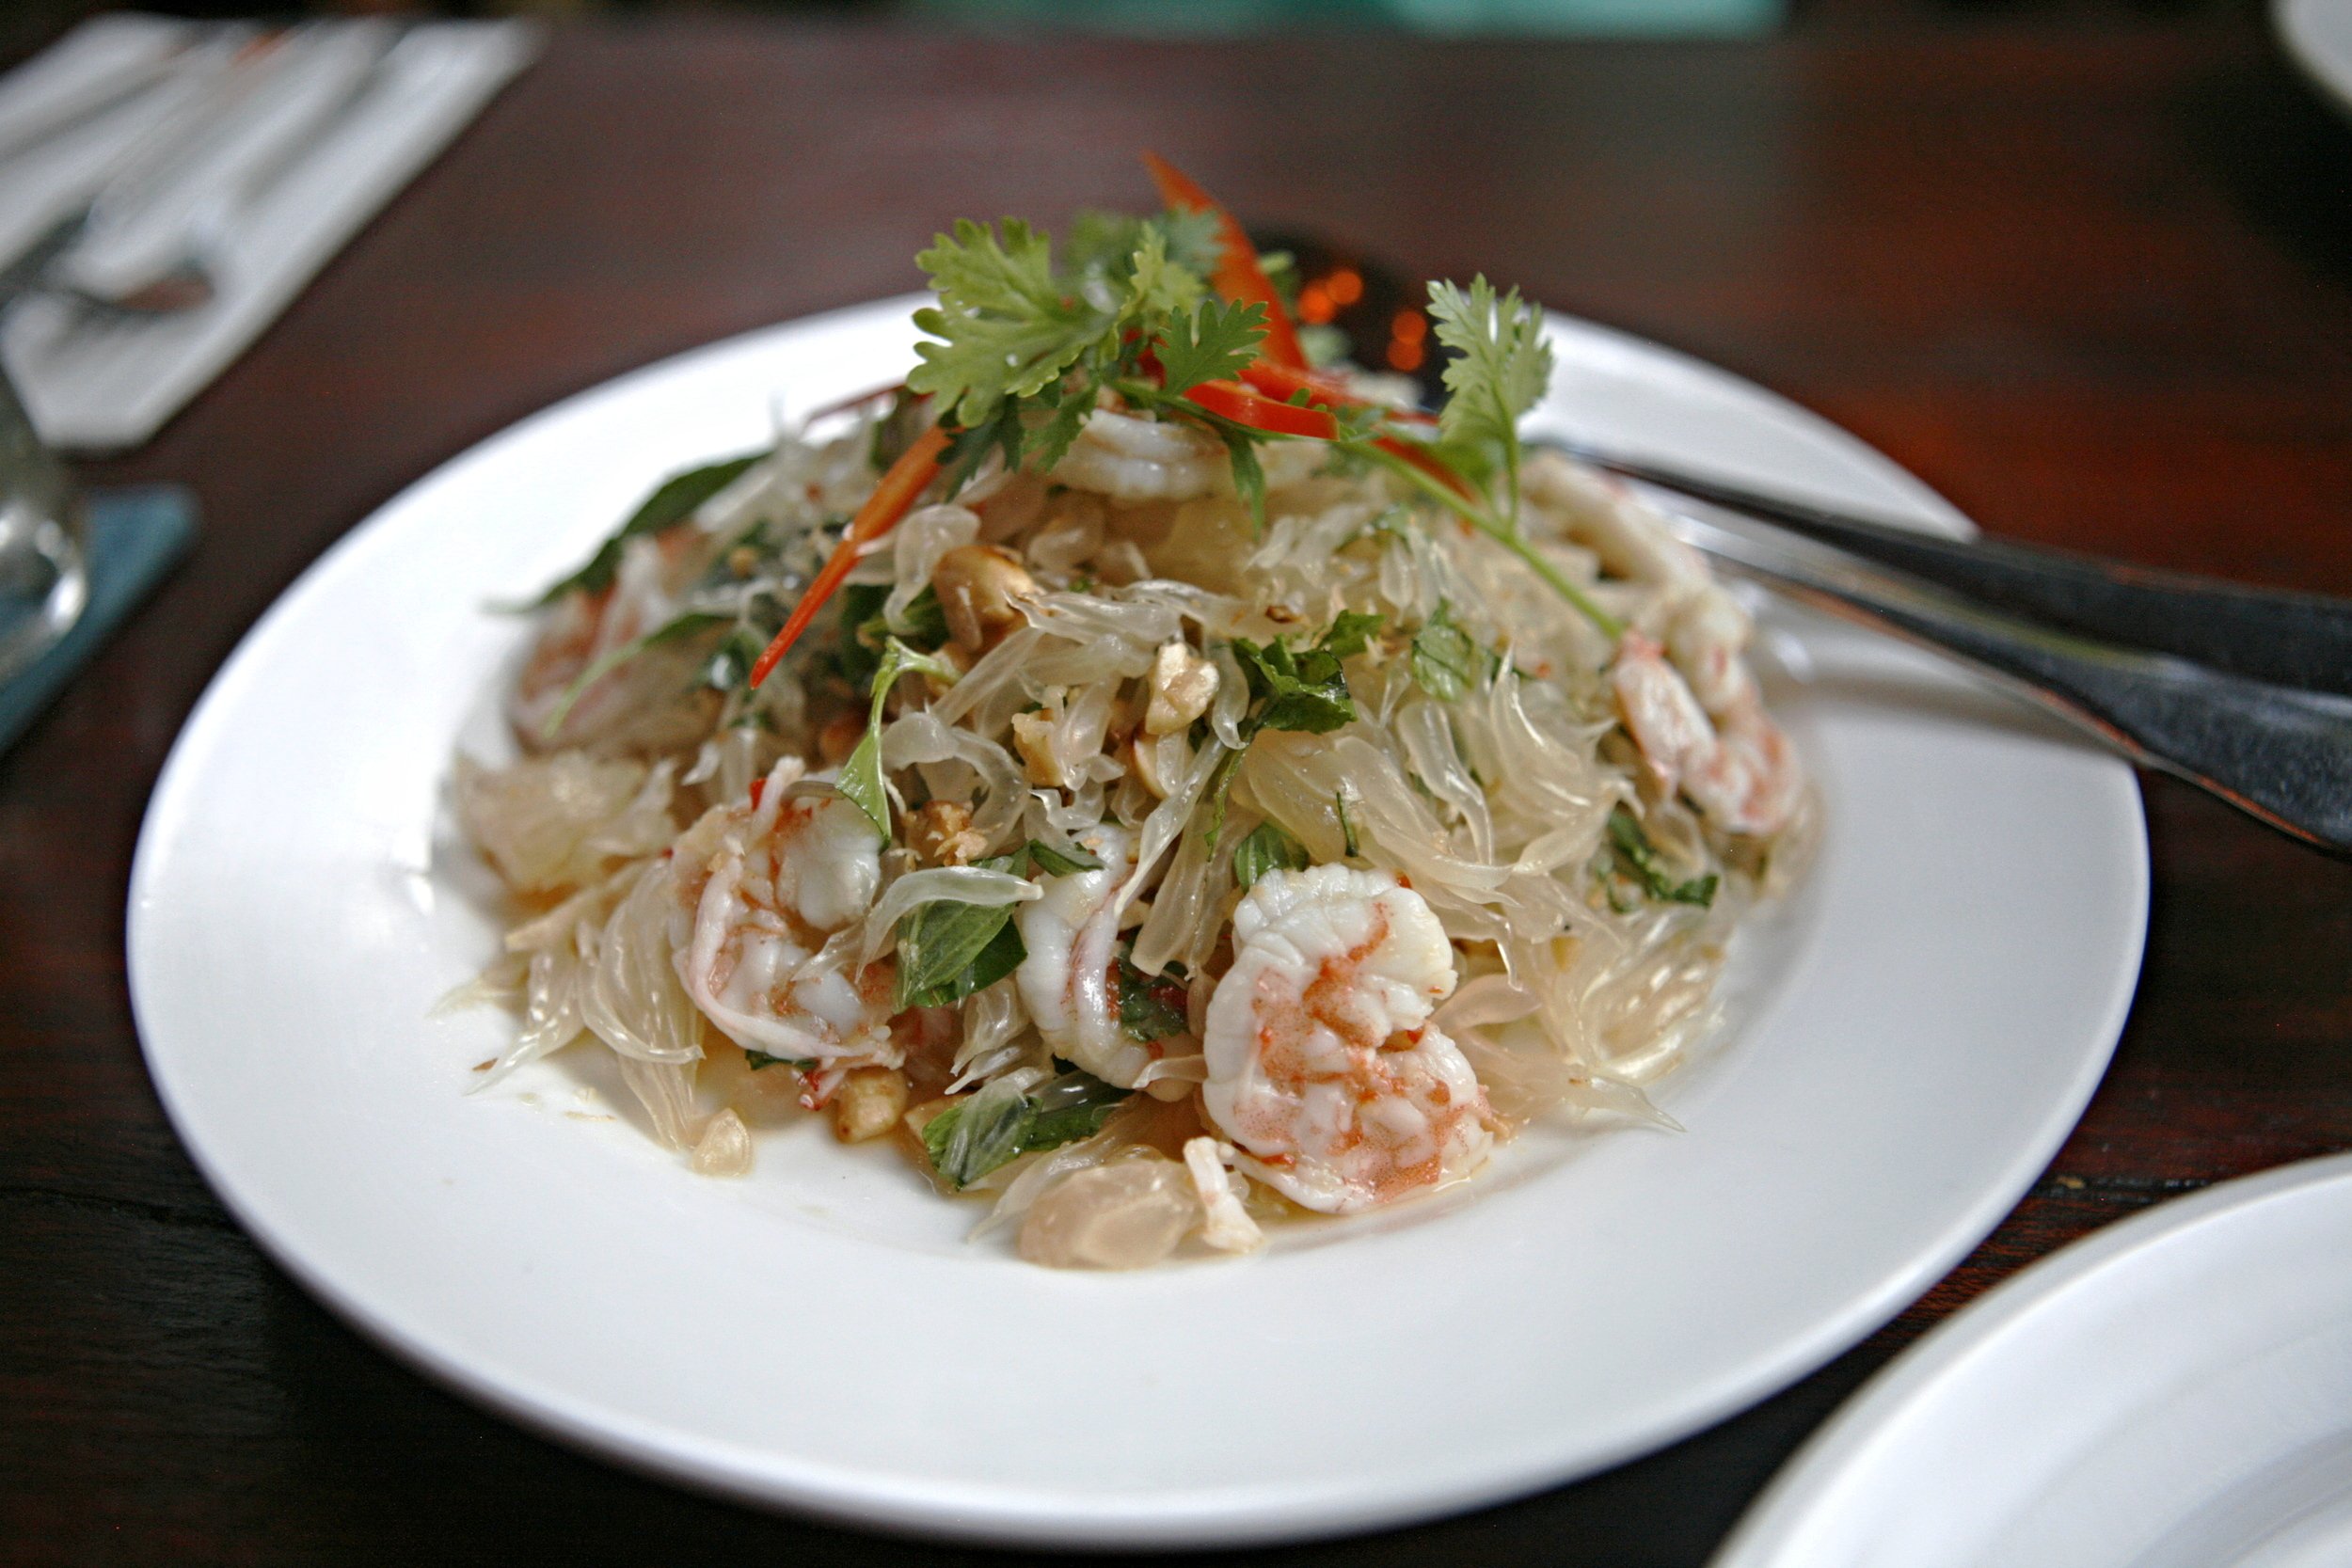 Pomelo salad with poached shrimp